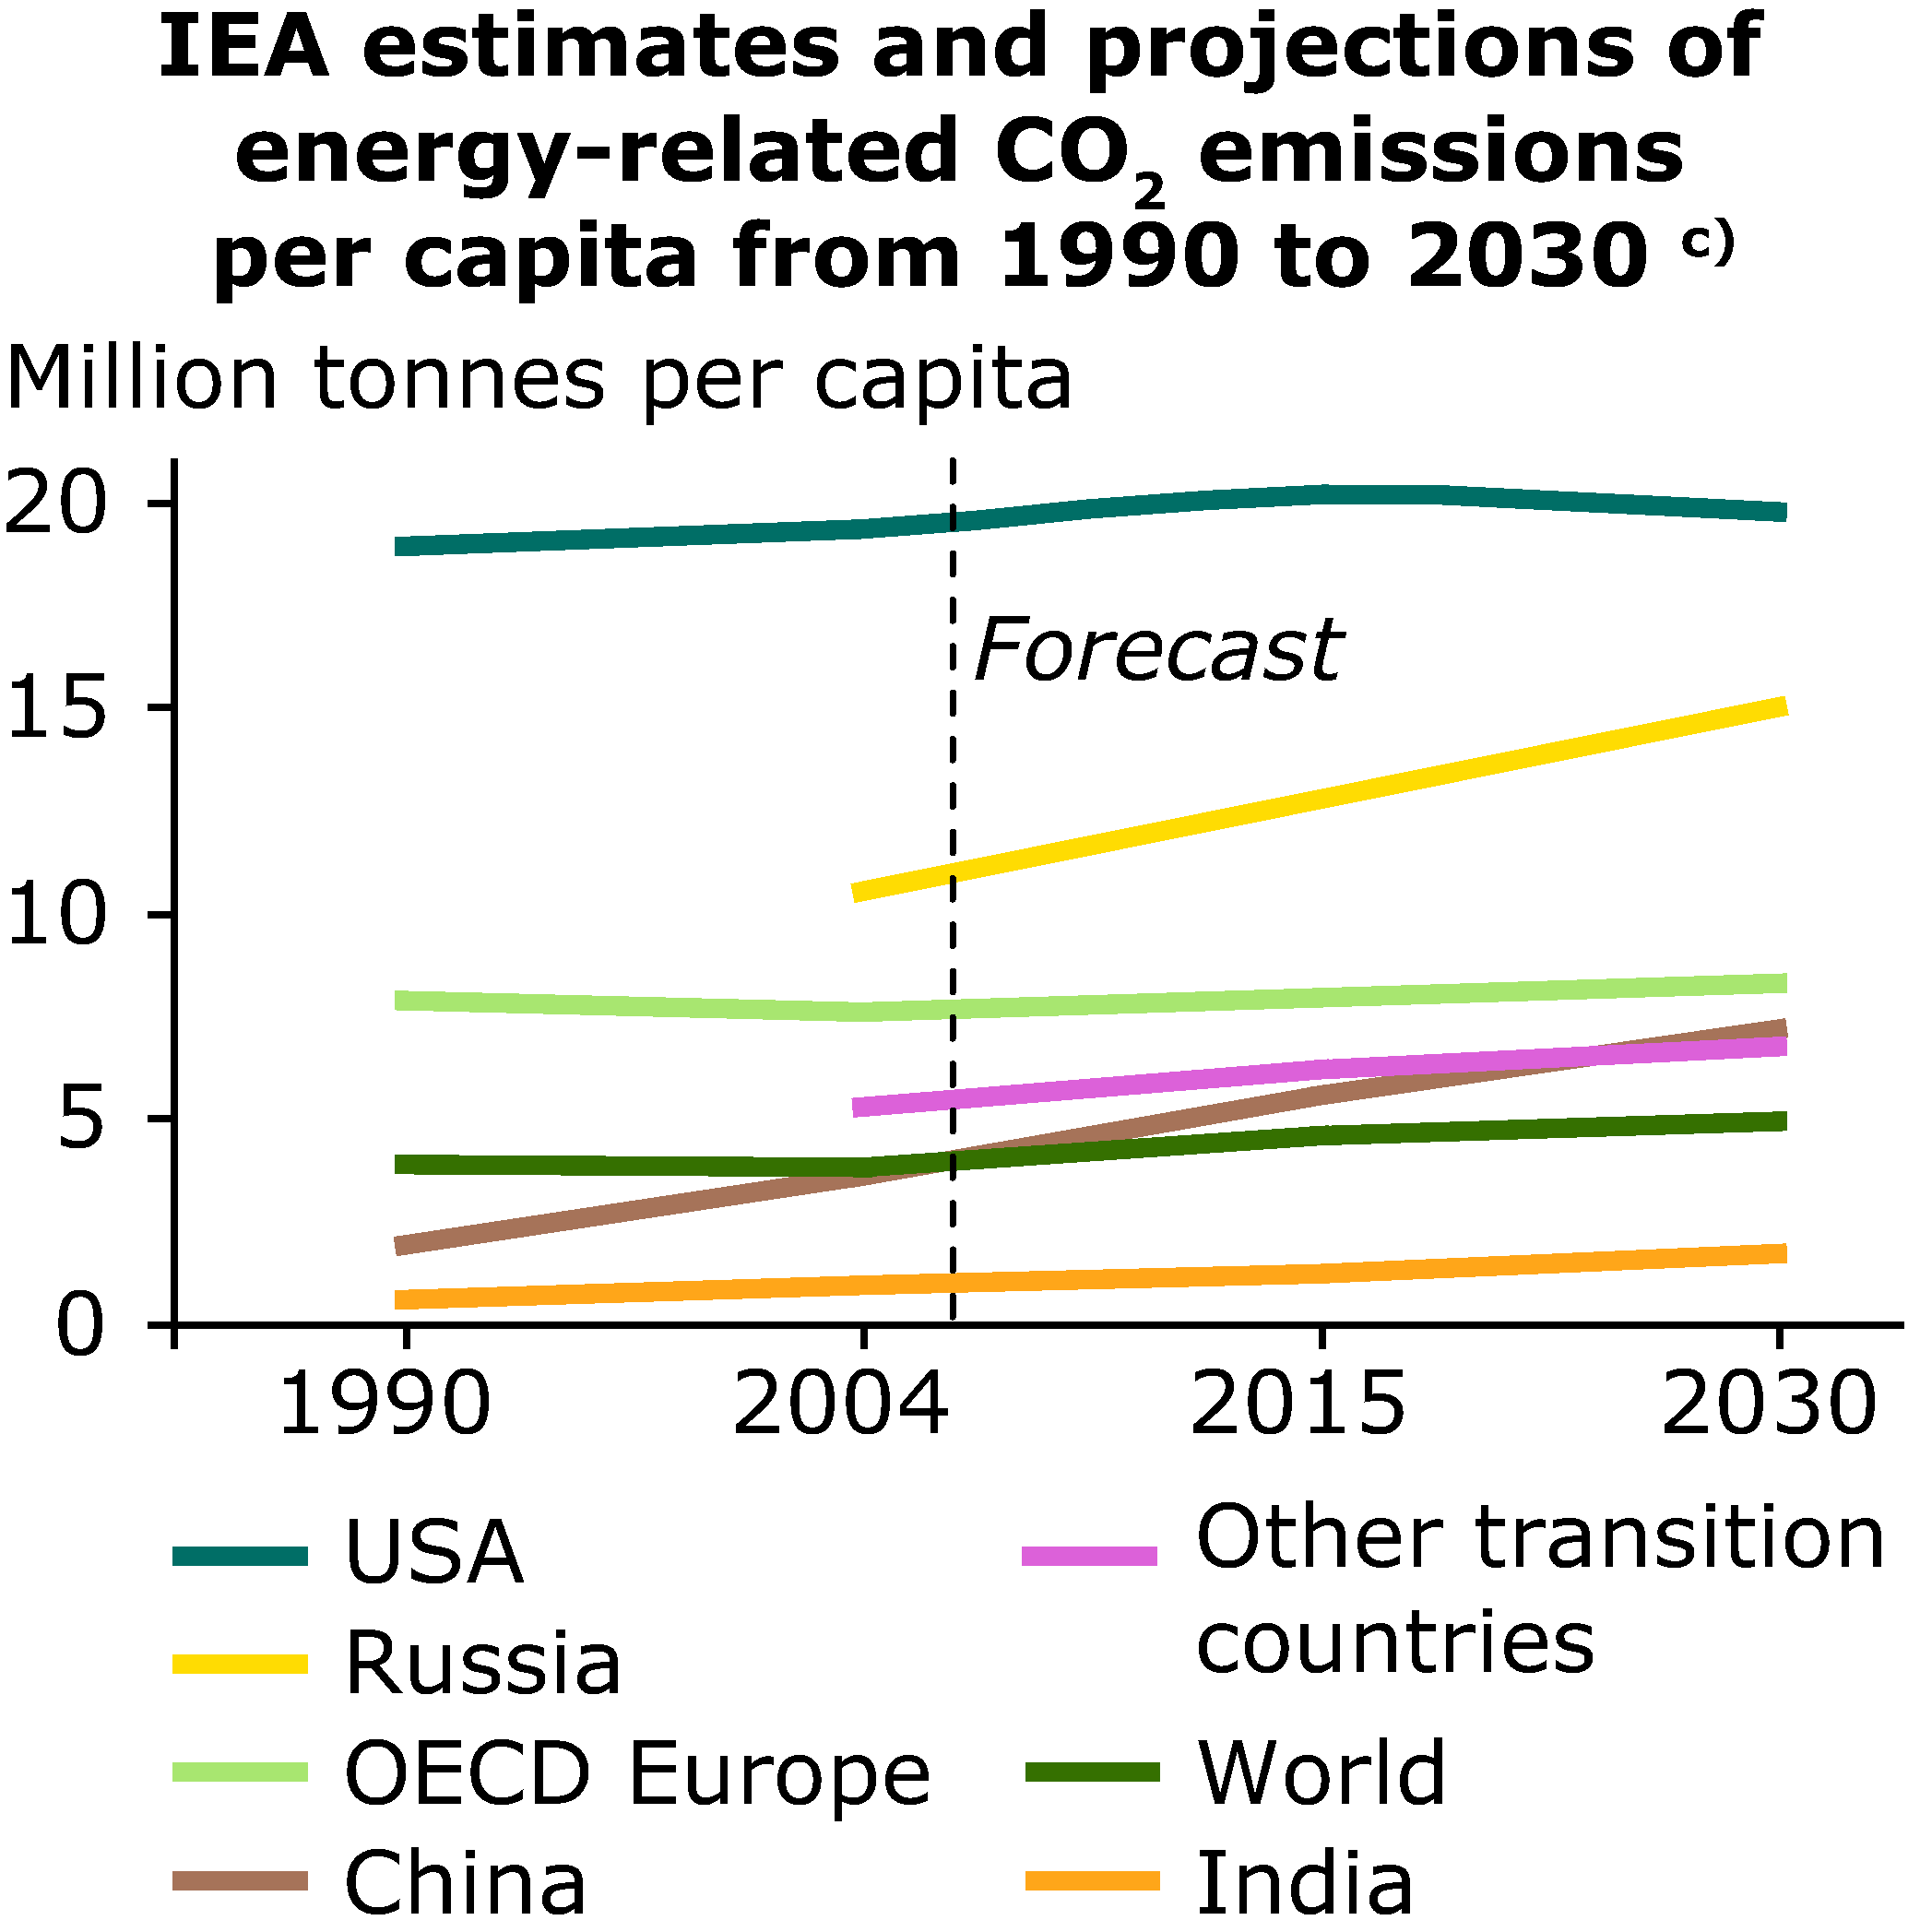 IEA estimates and projections of energy-related CO2 emissions per capita from 1990 to 2030